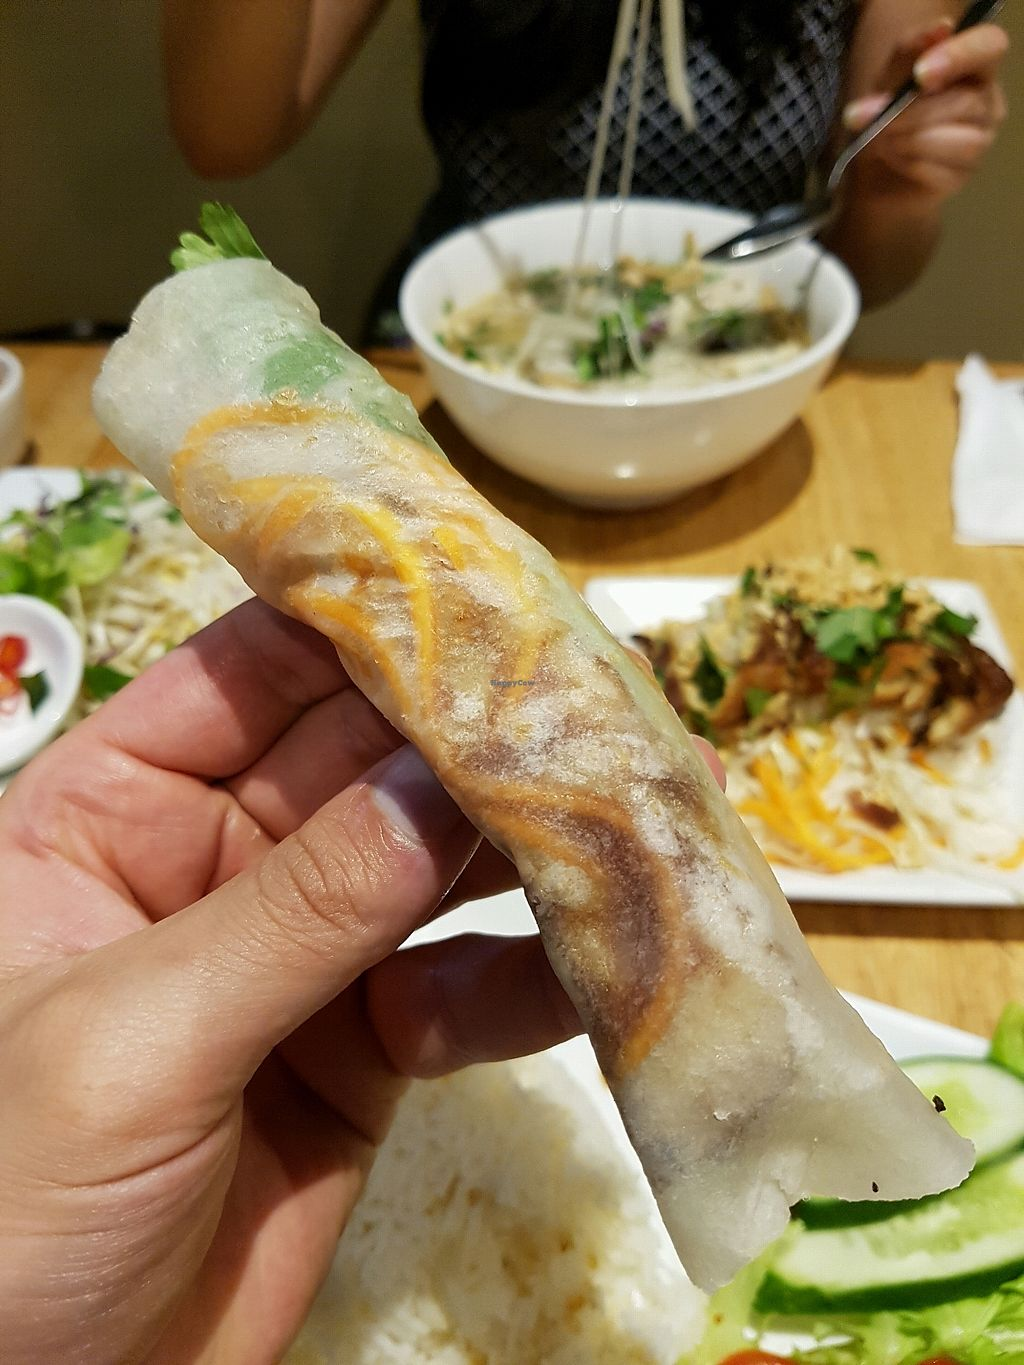 """Photo of An Nhien Vegetarian Cuisine  by <a href=""""/members/profile/JoeyJoe"""">JoeyJoe</a> <br/>peking wraps <br/> March 25, 2018  - <a href='/contact/abuse/image/90586/375935'>Report</a>"""